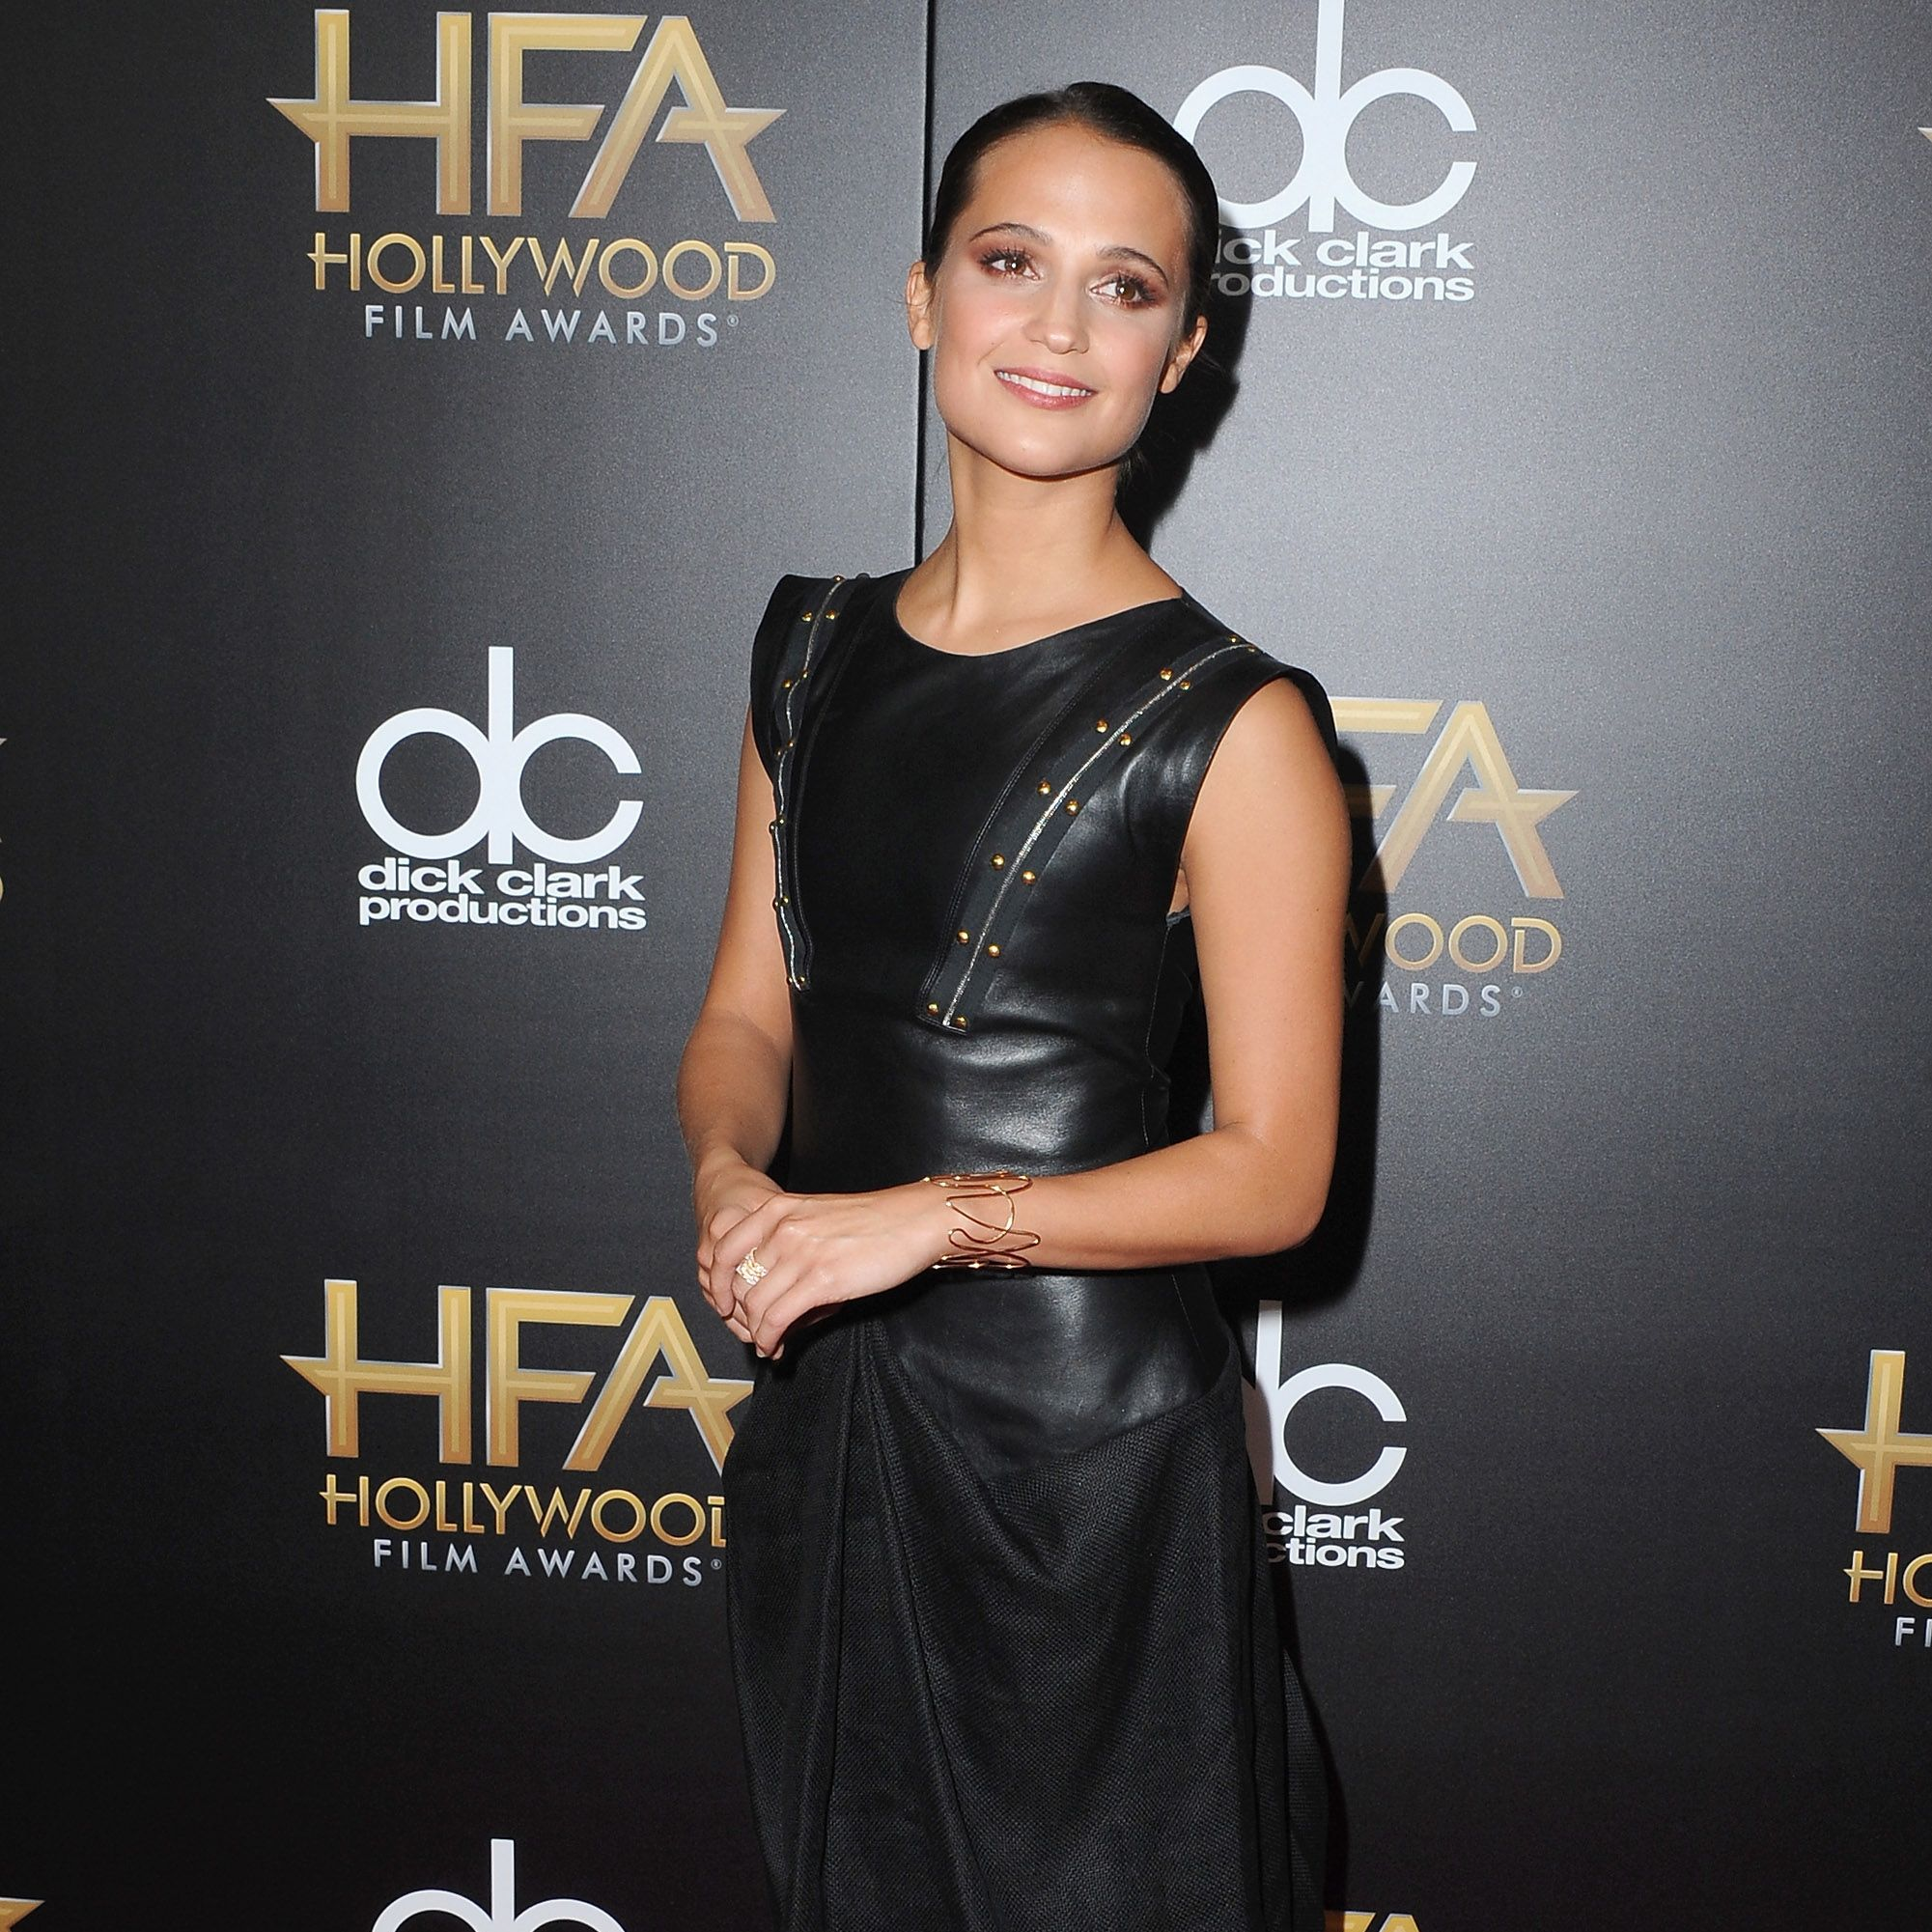 Celebrities on the red carpet at the Hollywood Film Awards 2015